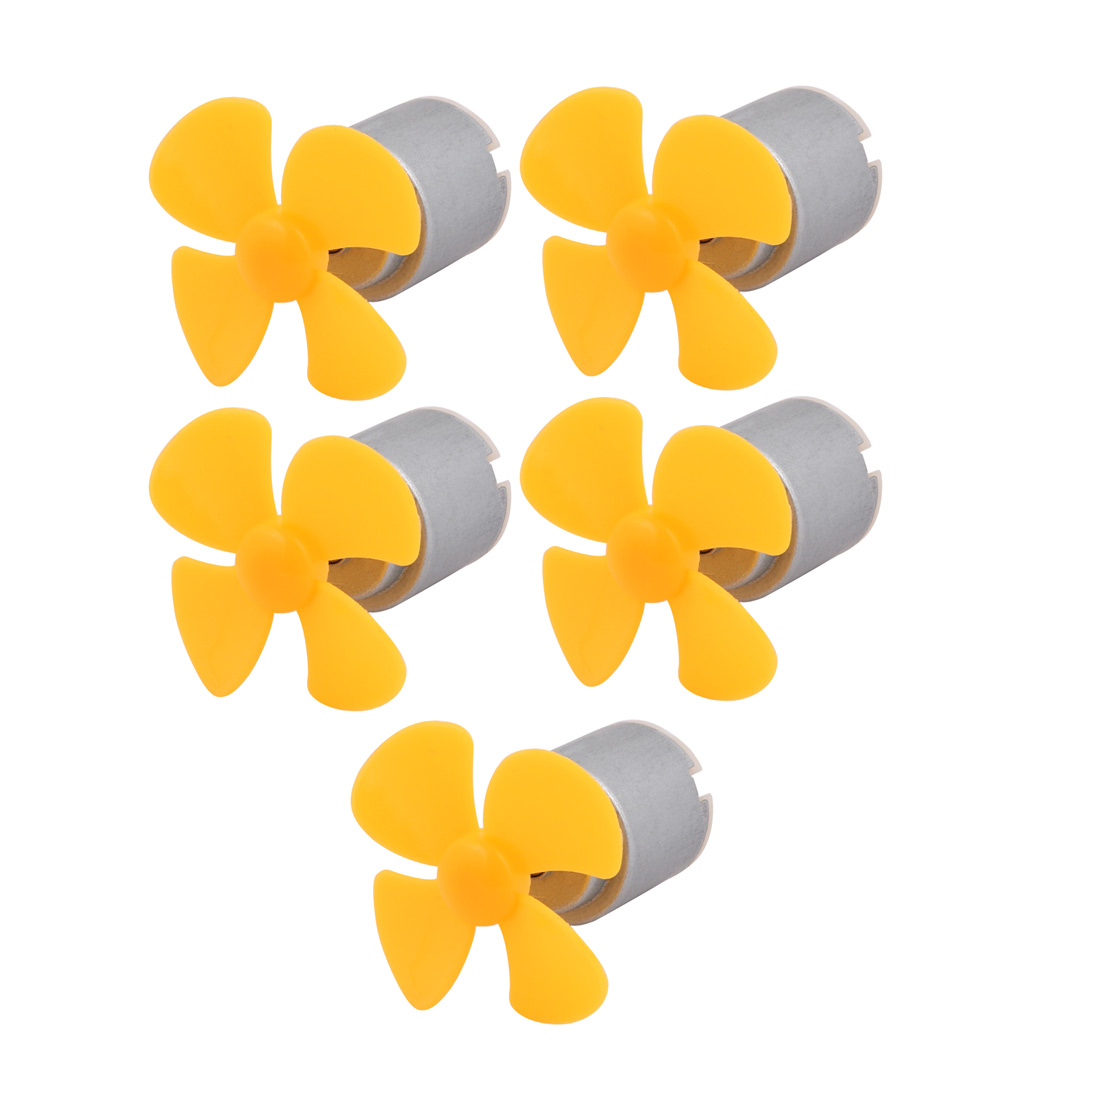 5pcs DC 3V 0.13A 14000RPM Strong Force Motor 4 Vanes 40mm Yellow Propeller for RC Aircraft